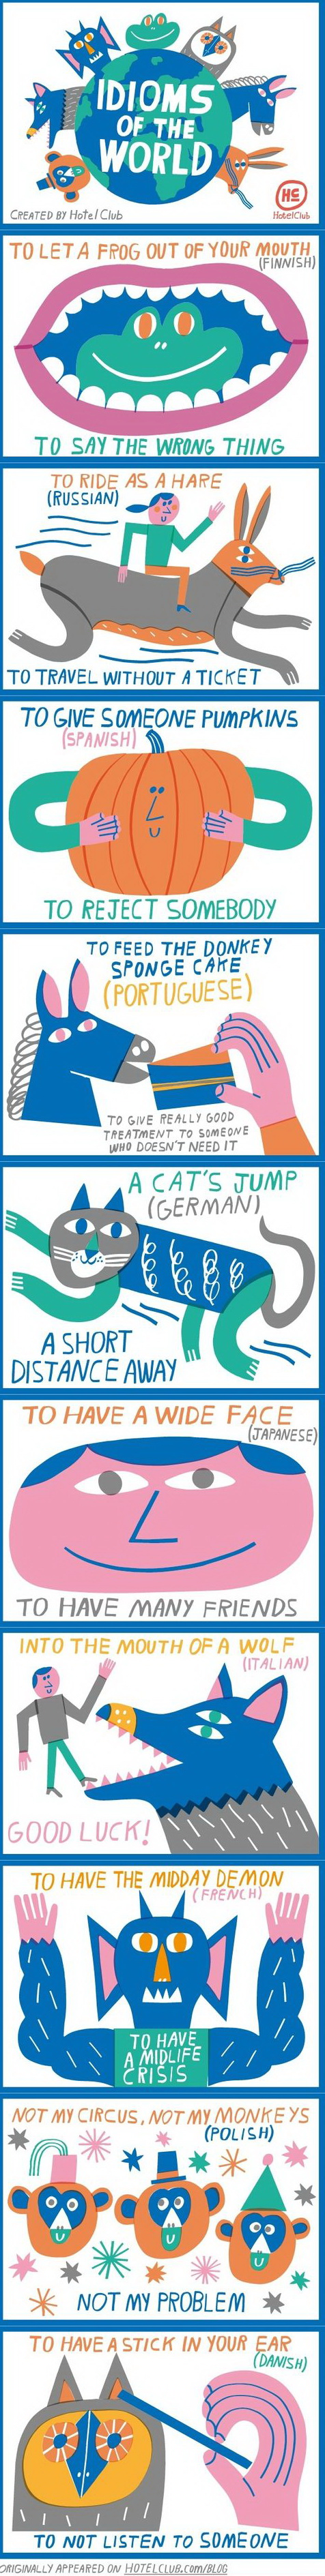 funny pics, idioms of the world